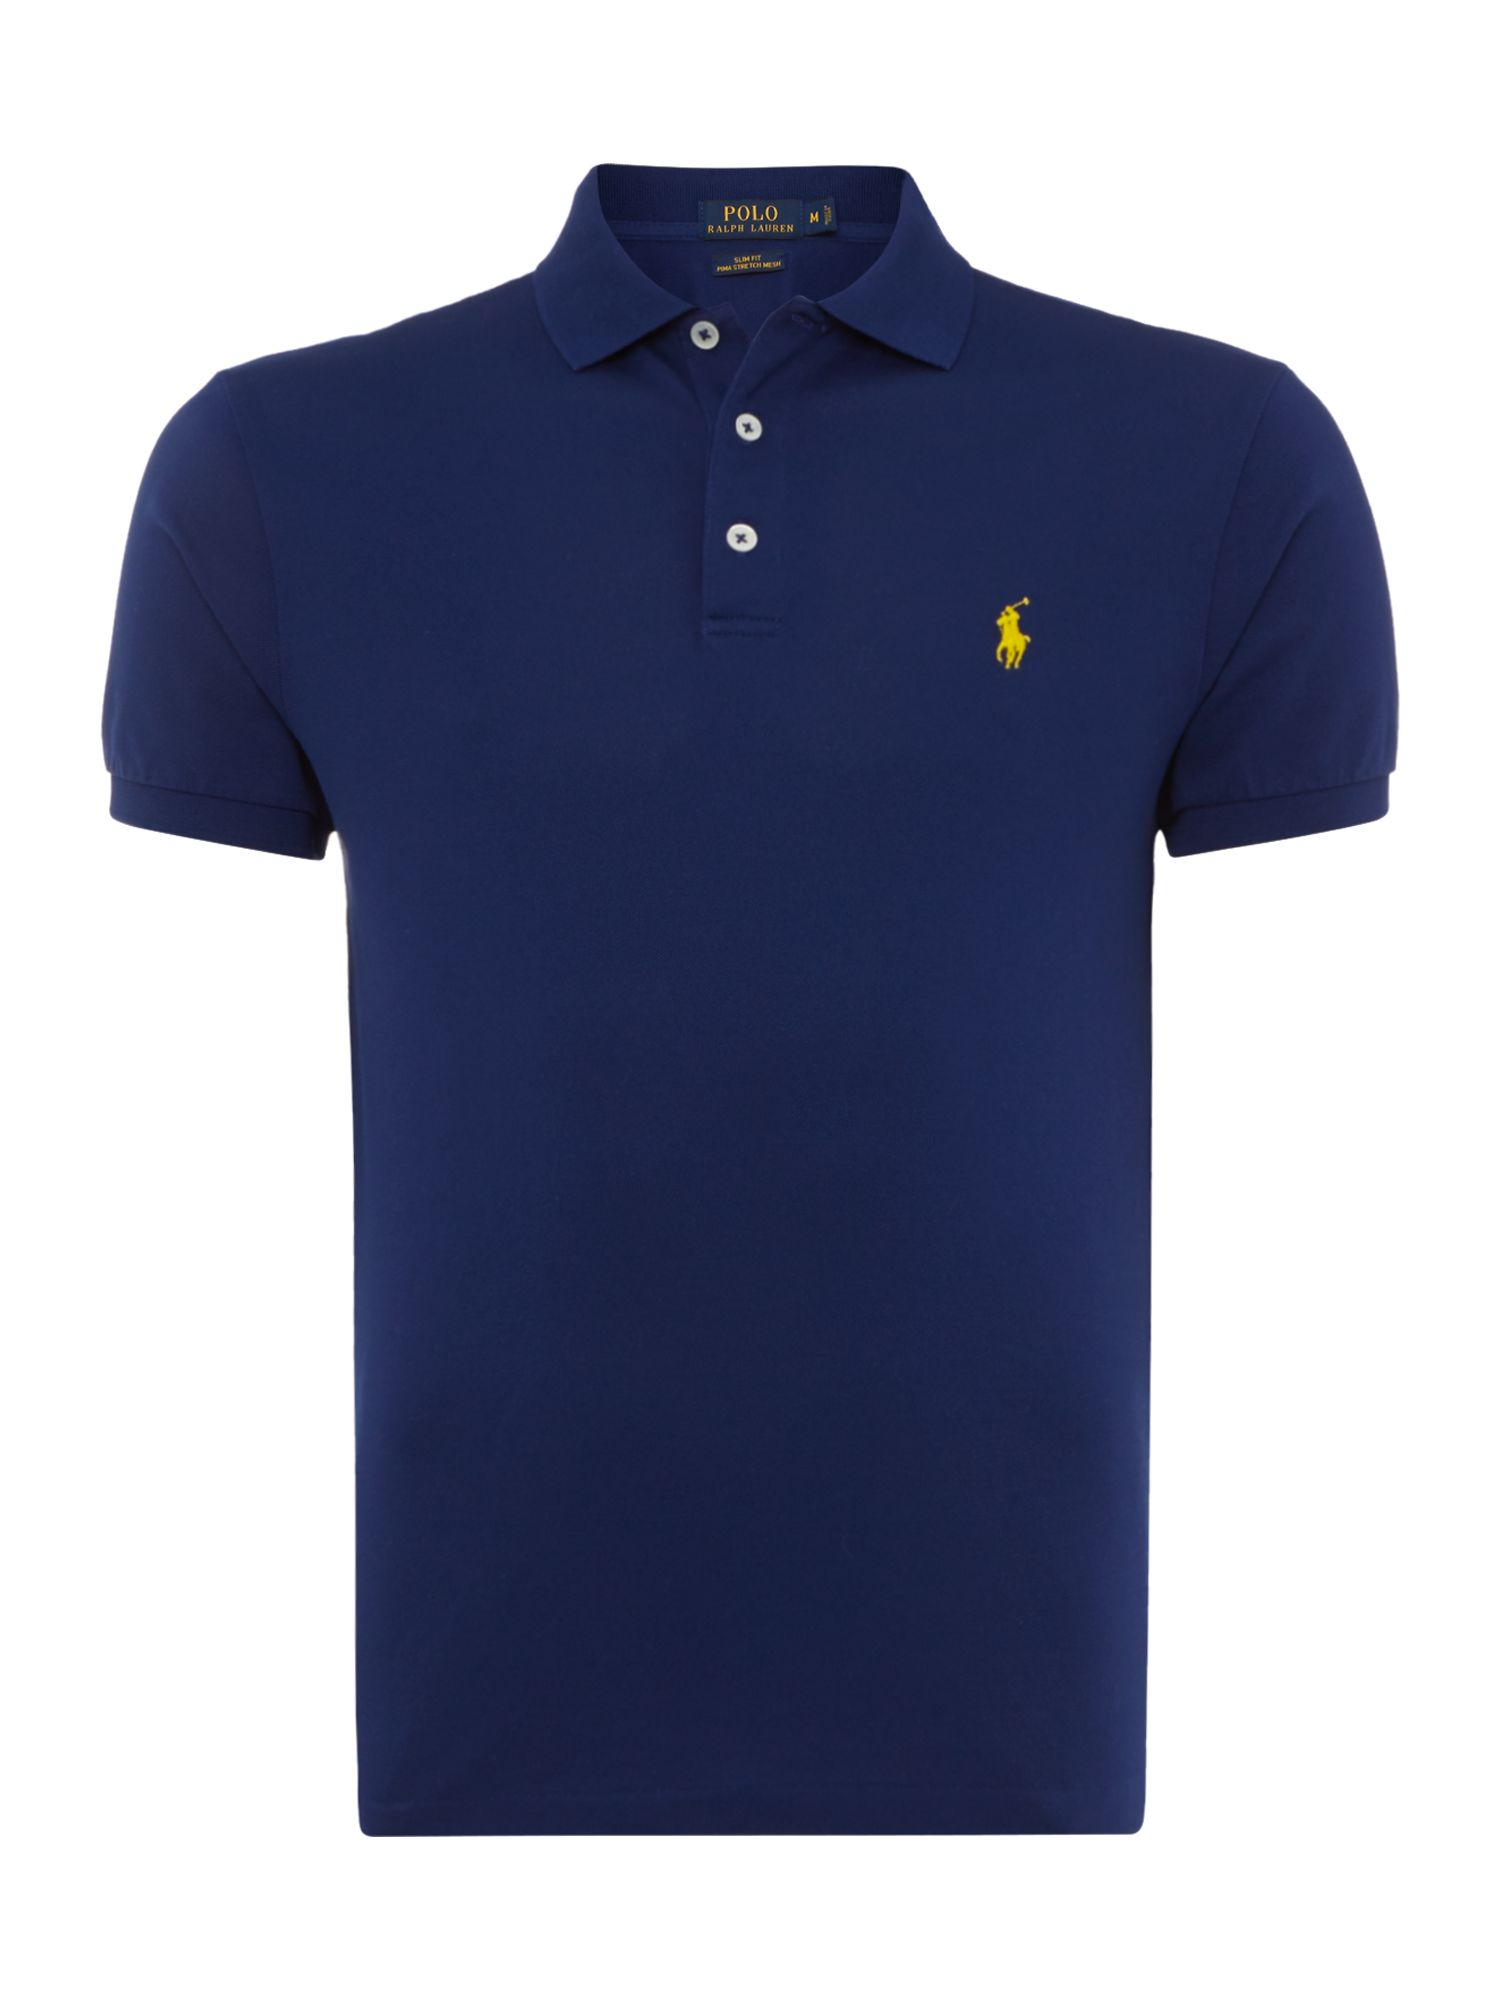 polo ralph lauren slim fit stretch mesh polo shirt in blue. Black Bedroom Furniture Sets. Home Design Ideas